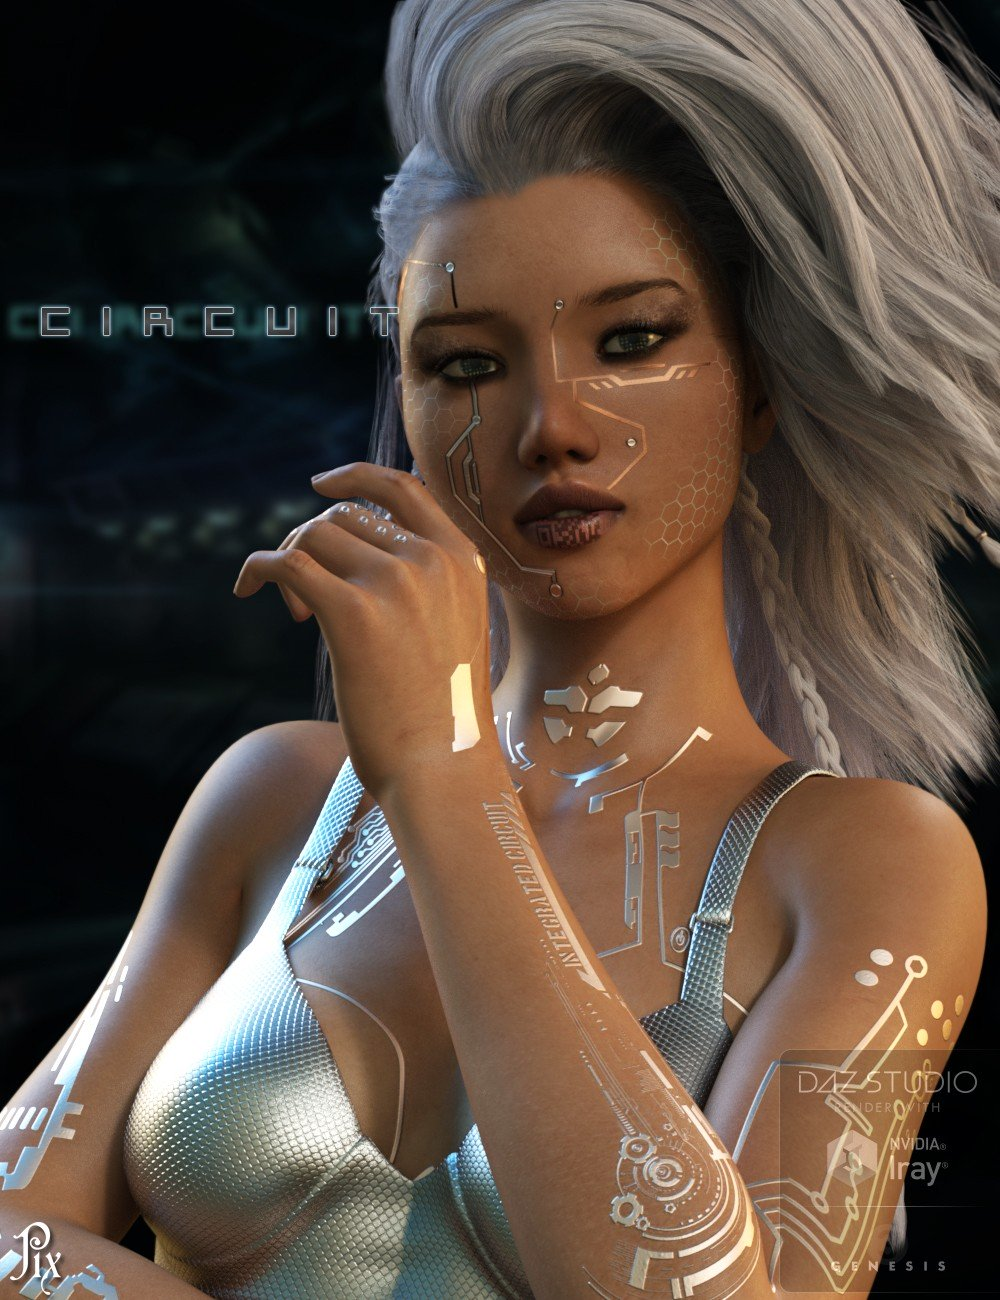 Pix Circuit for Genesis 3 Female_DAZ3D下载站